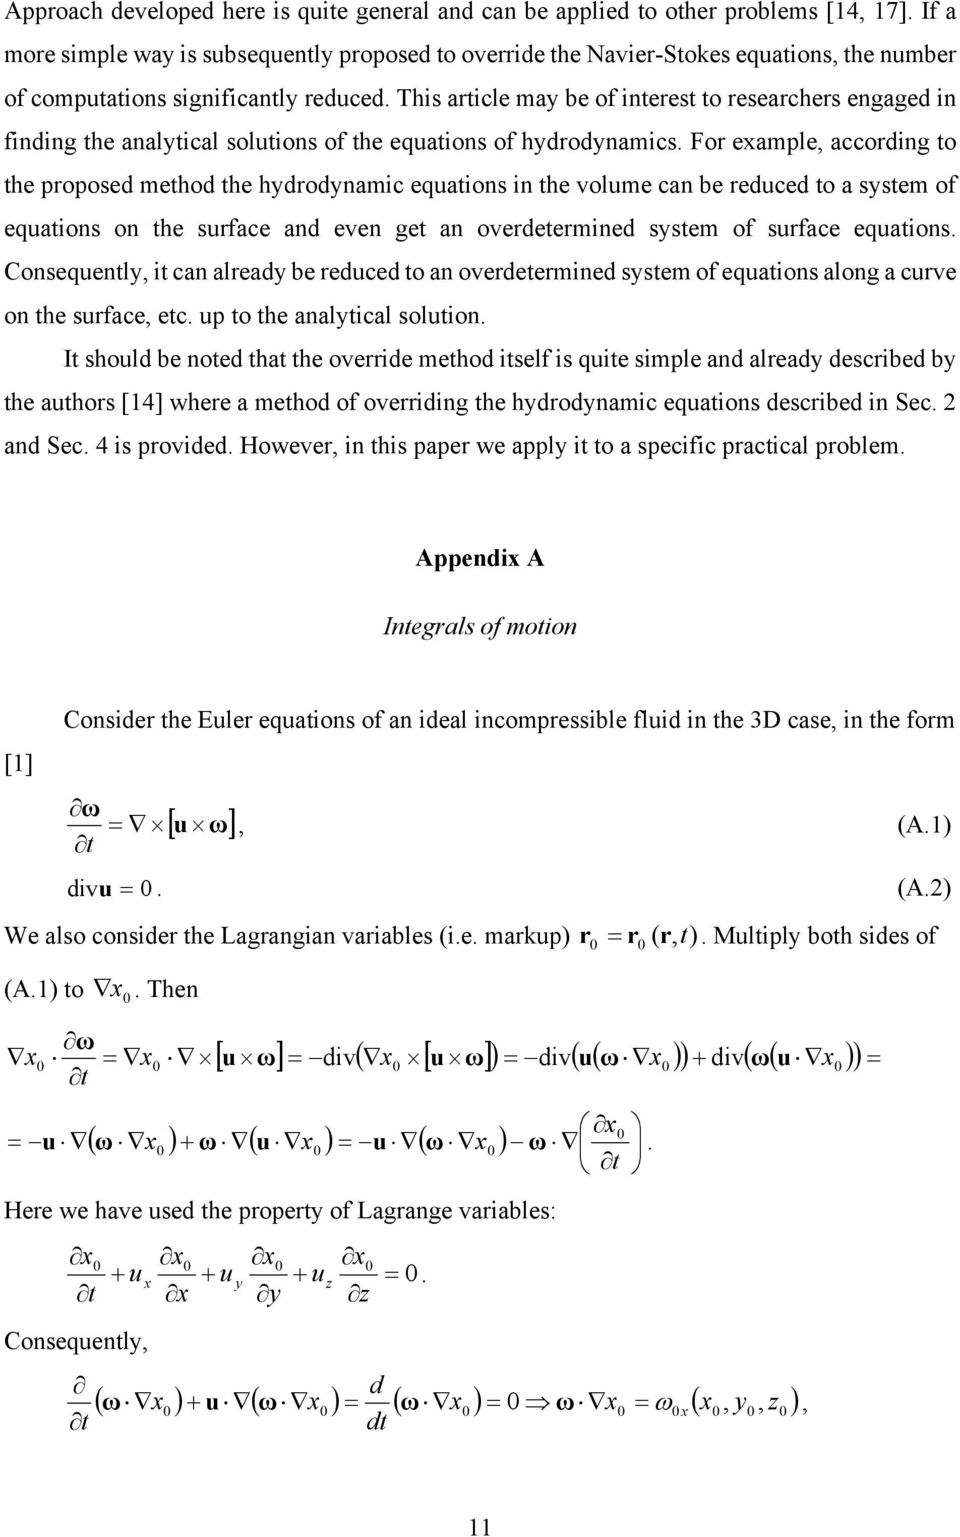 This article may be of interest to researchers engaged in finding the analytical solutions of the equations of hydrodynamics.